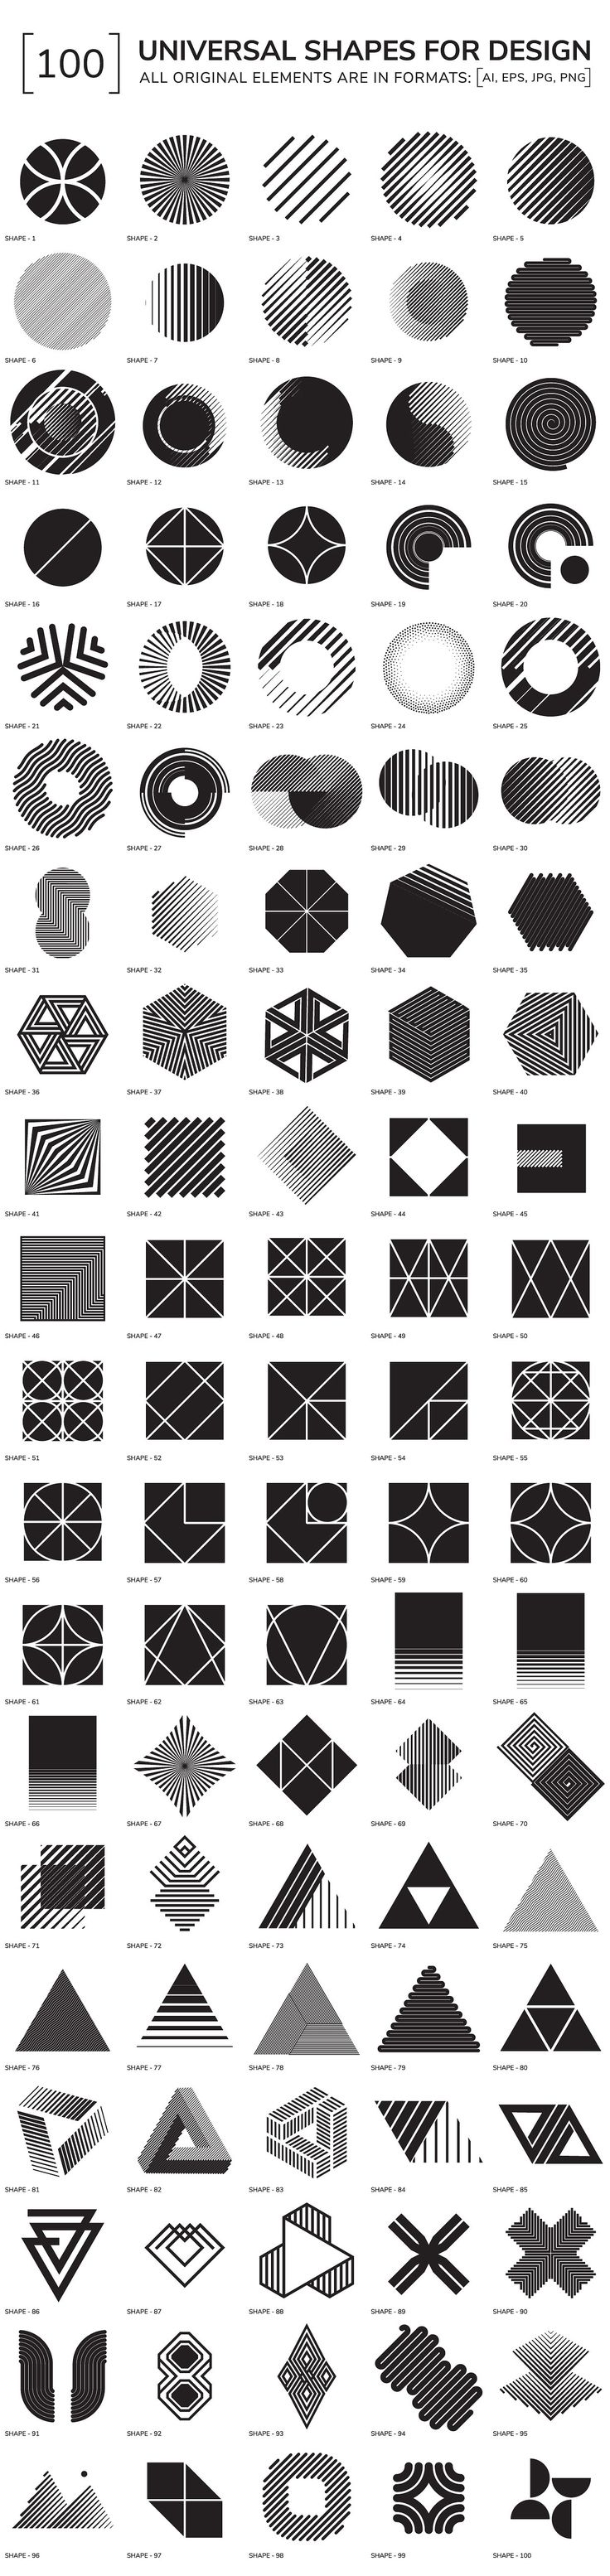 100 geometric shapes by Vanzyst on @creativemarket